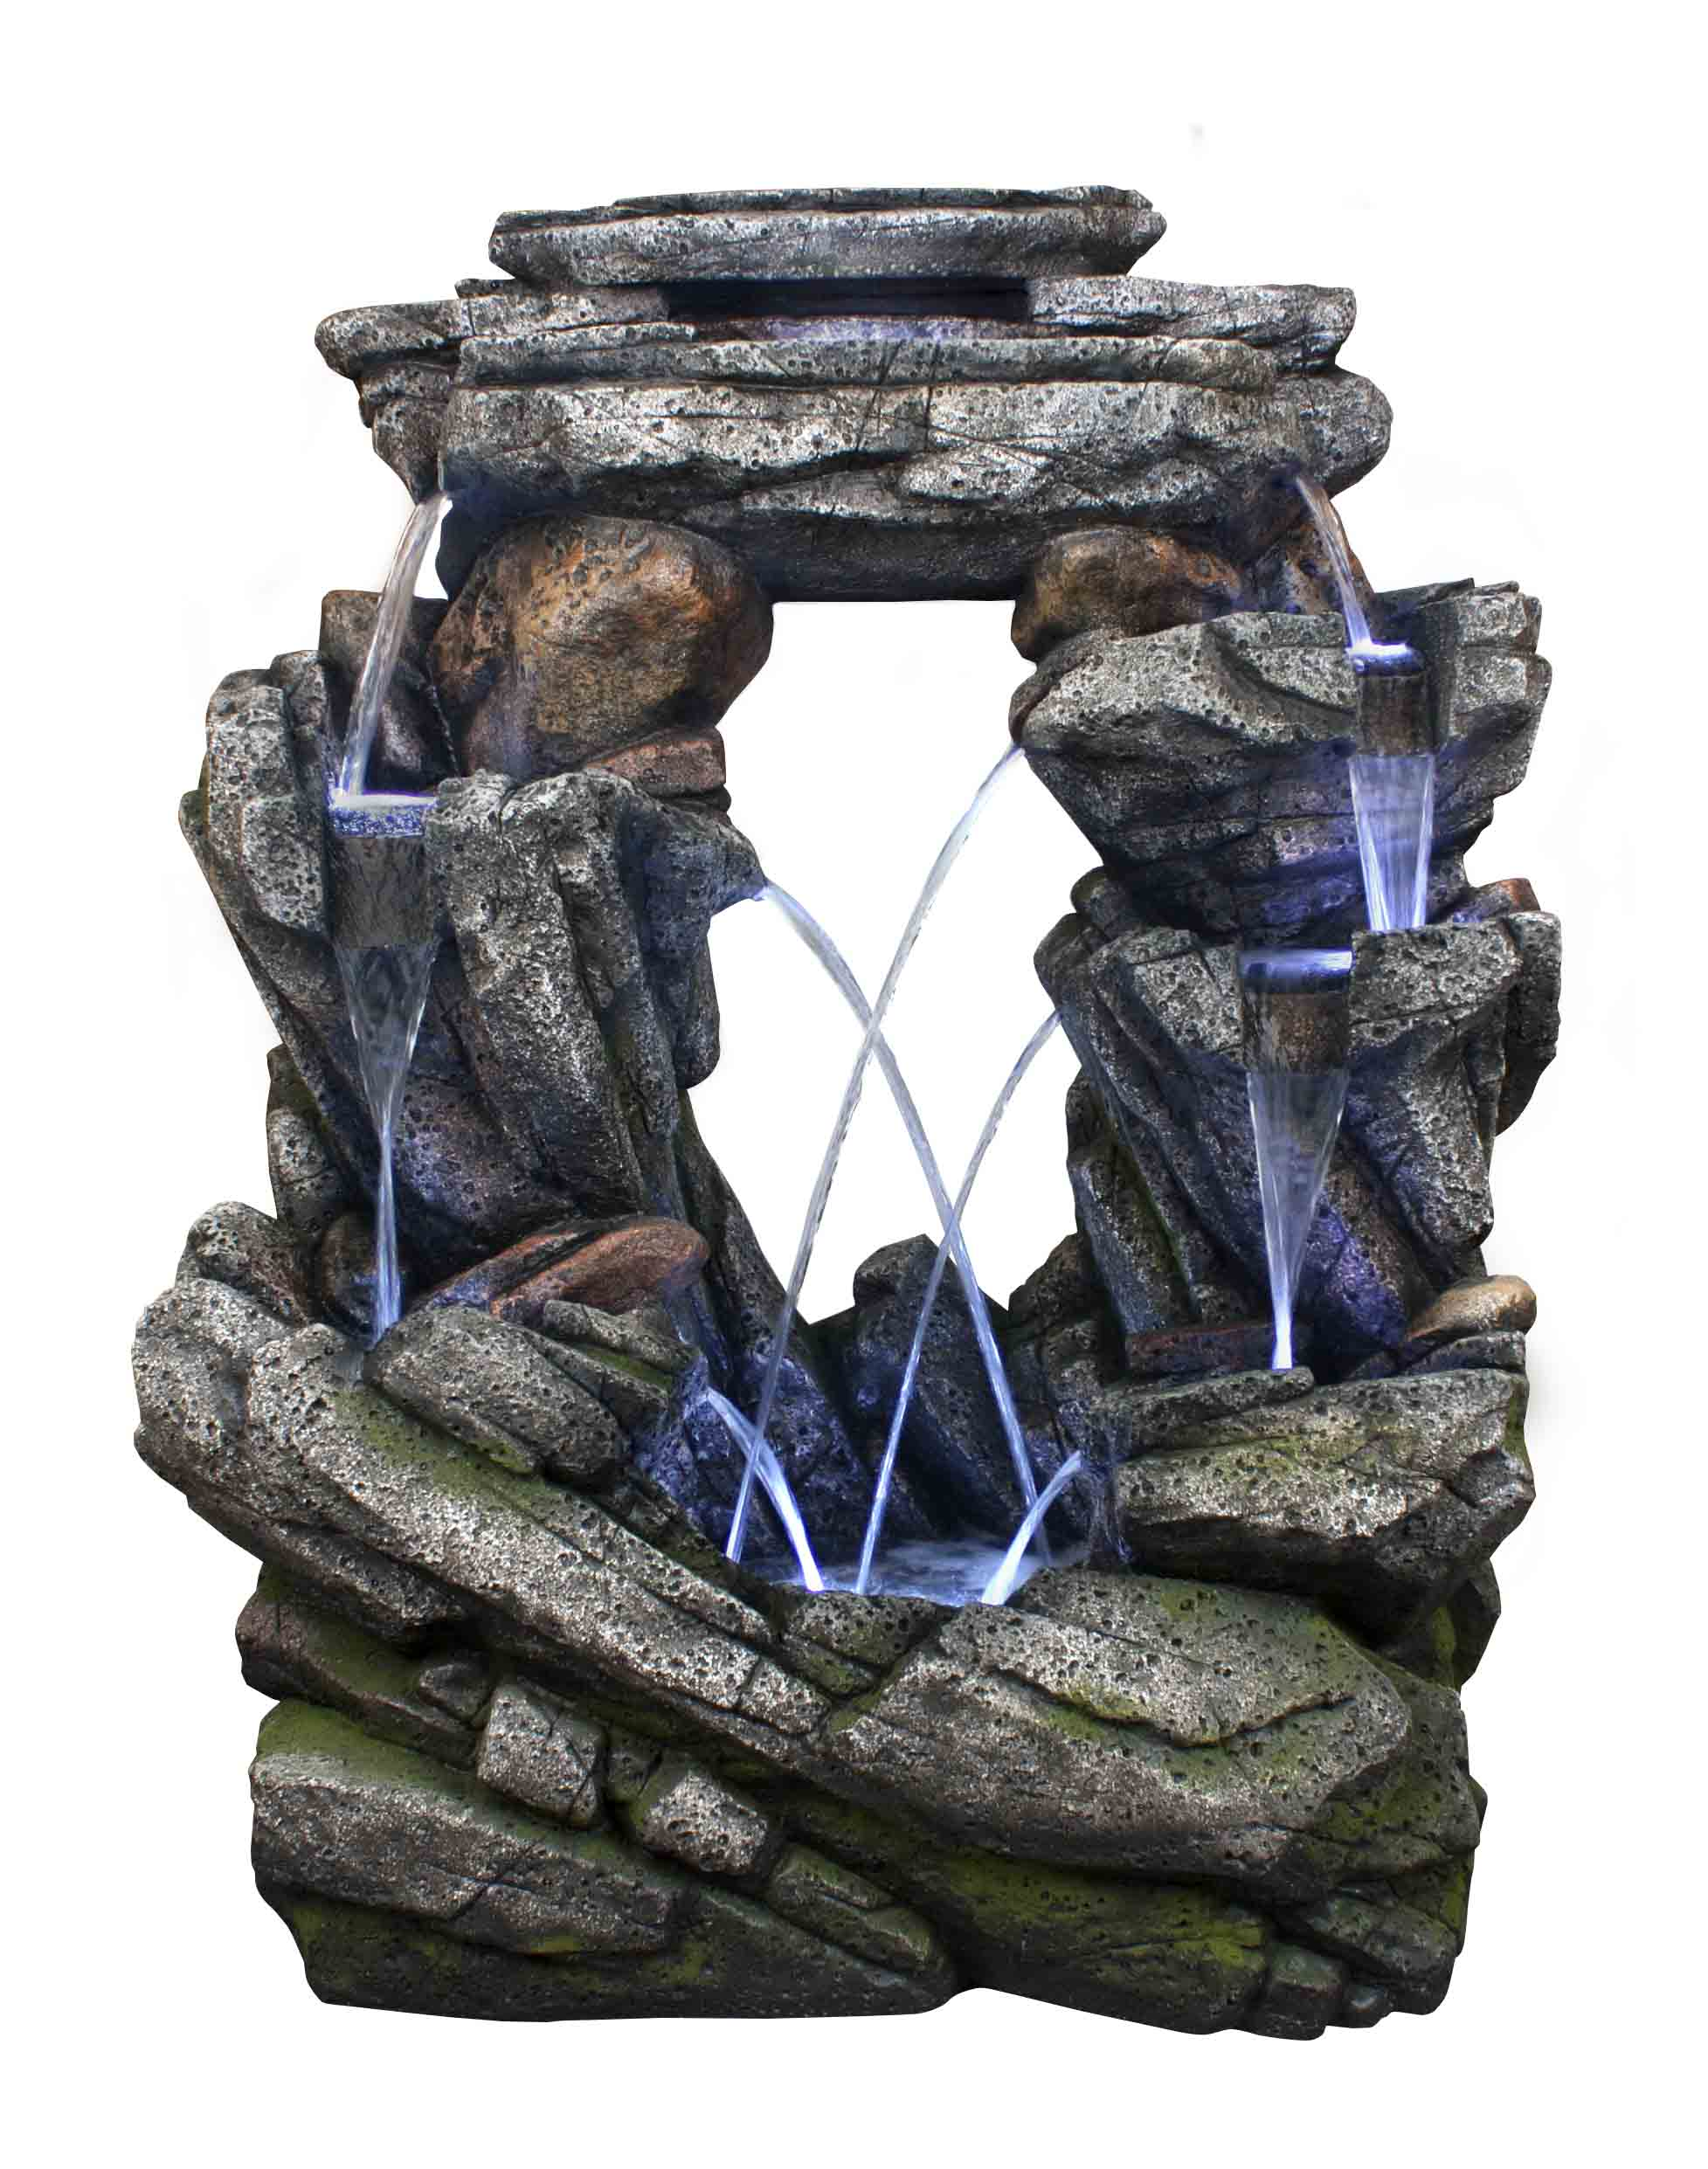 "Alpine Corporation WIN1216 Alpine Open Rock Fountain w LED Light, 52 Inch Tall Floor, 26"" W x 41"" L... by Alpine"